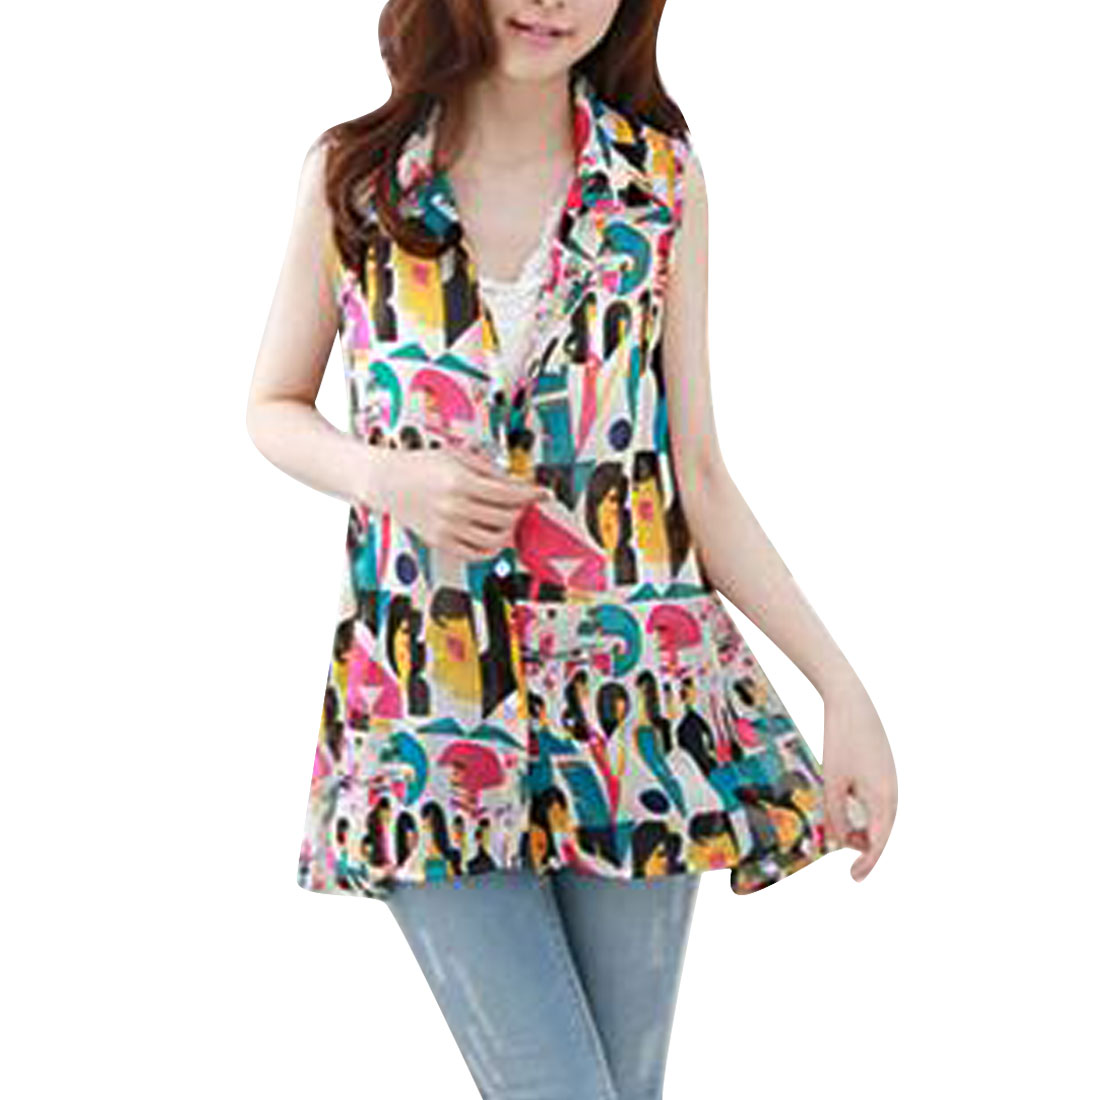 Women Point Collar Button Front Sleeveless Design Summer Shirt Multicolor S